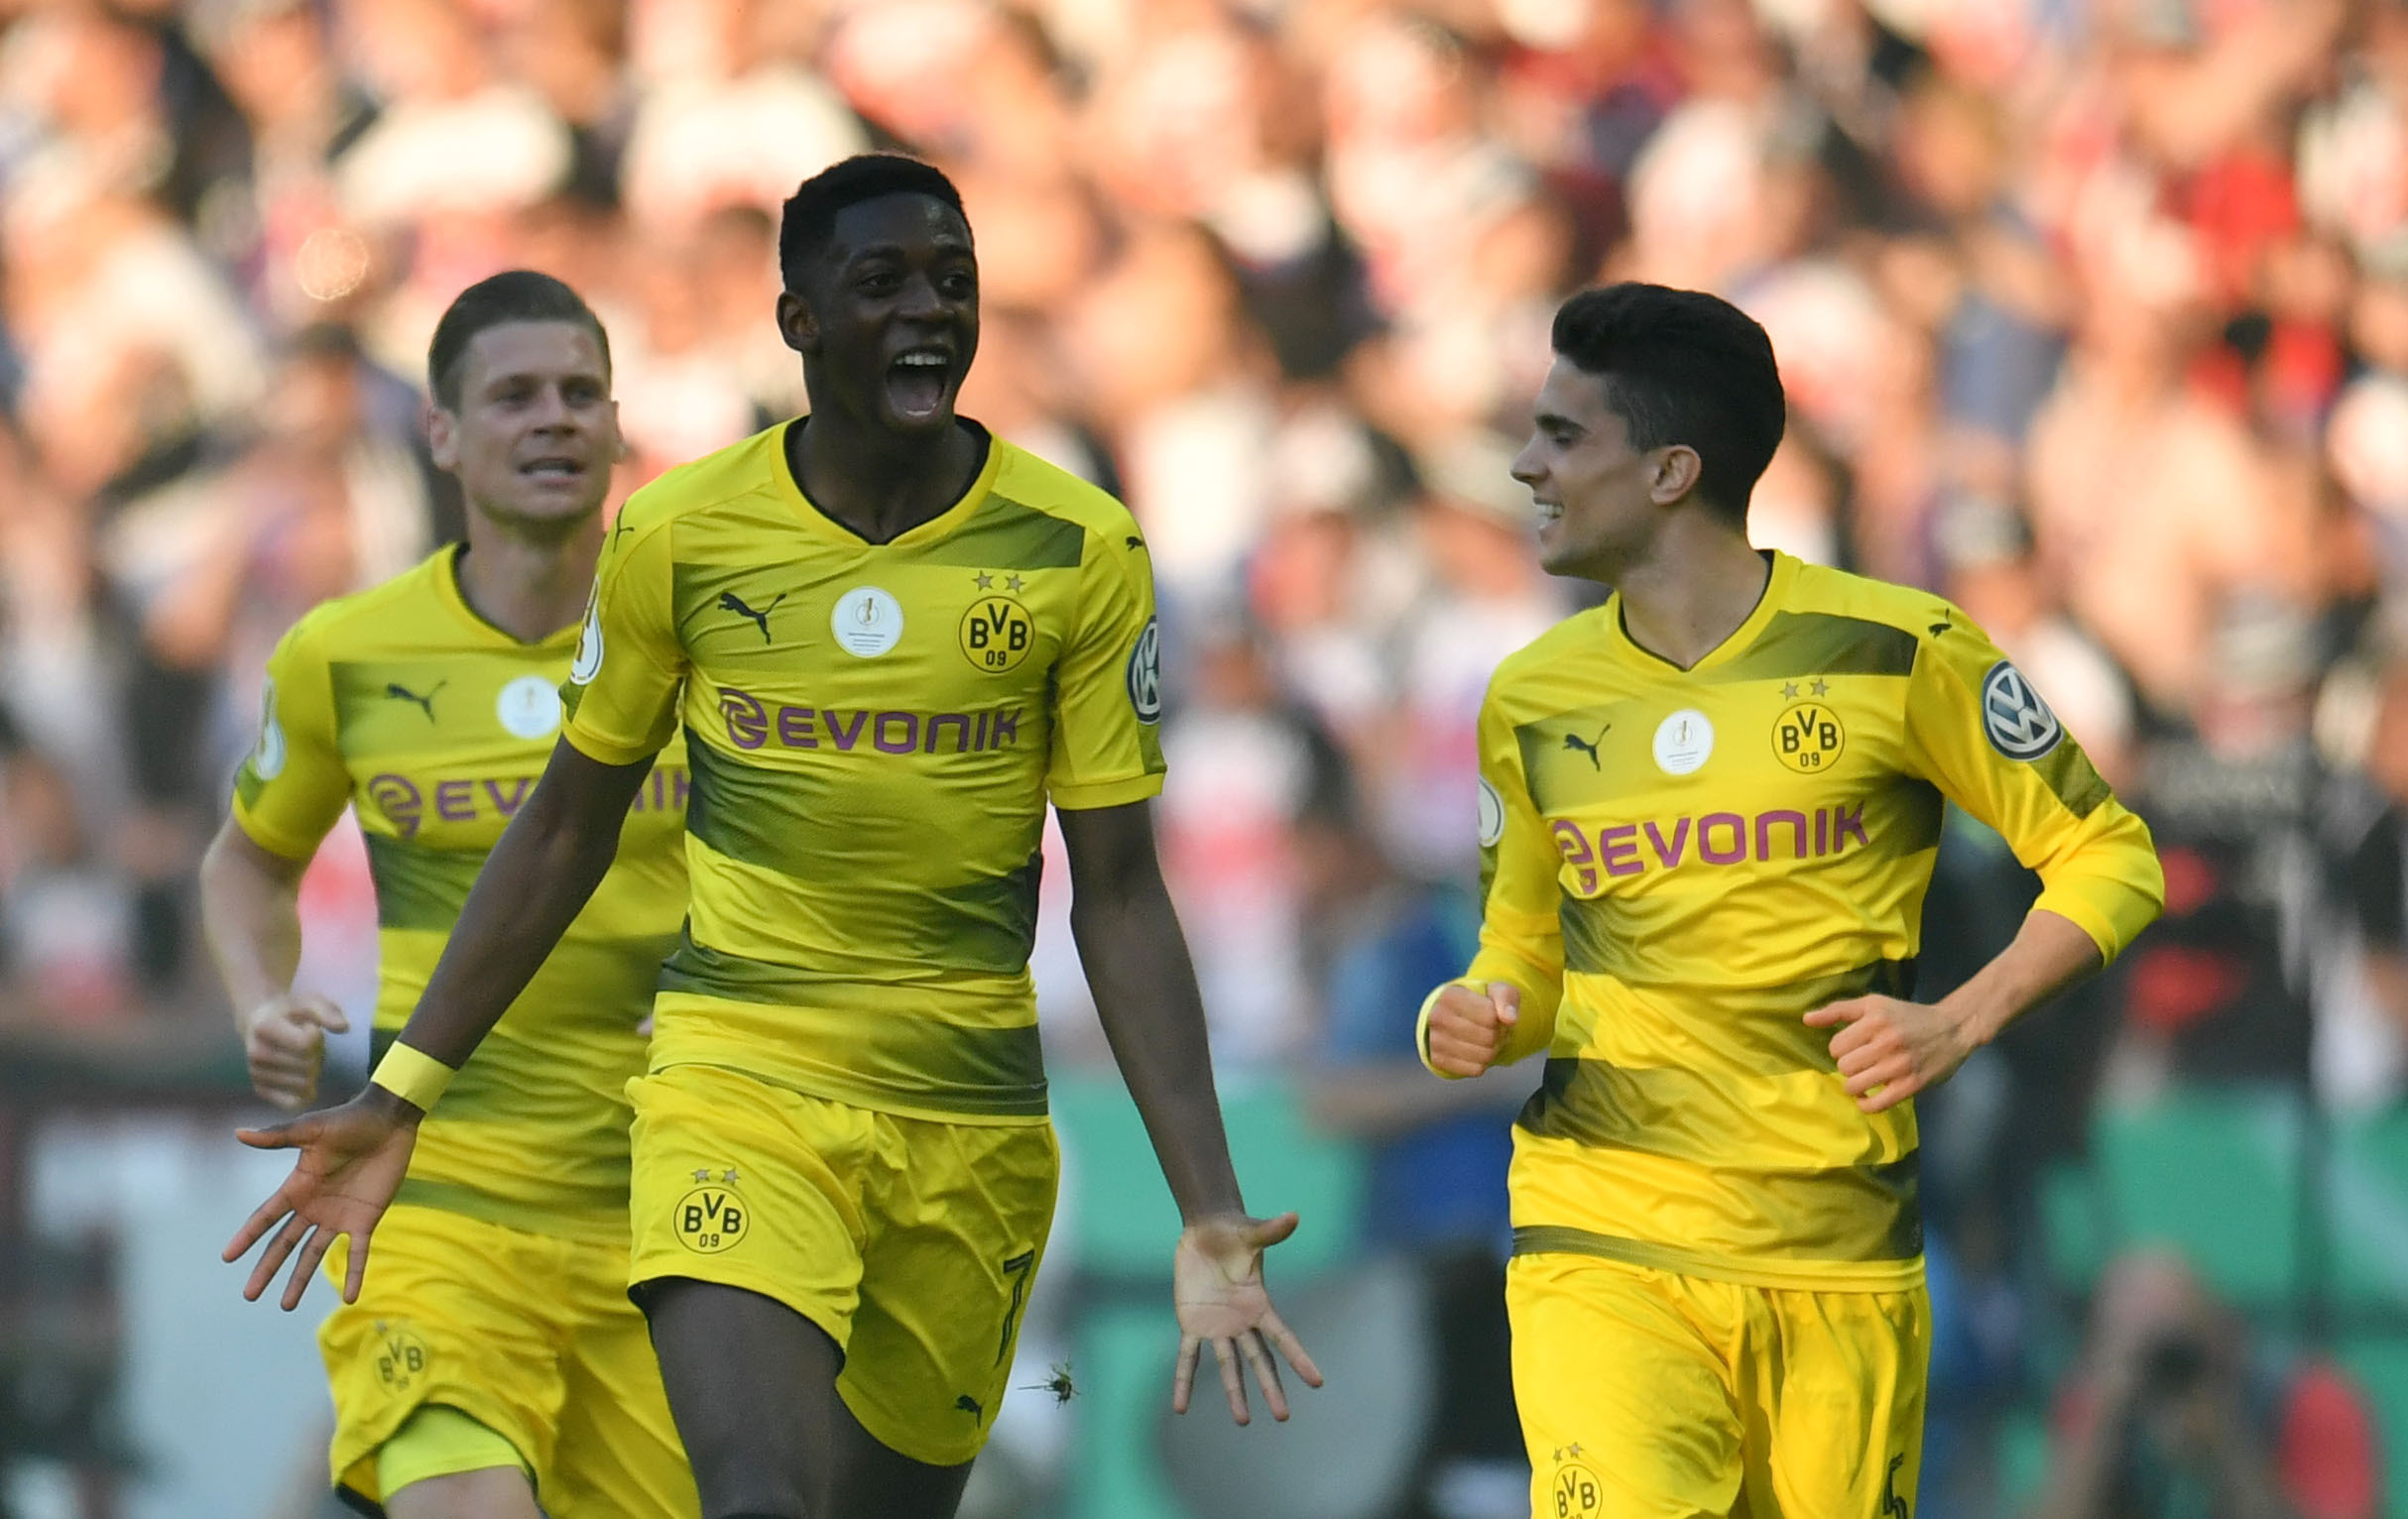 Borussia Dortmund tell Barcelona their price for Ousmane Dembele